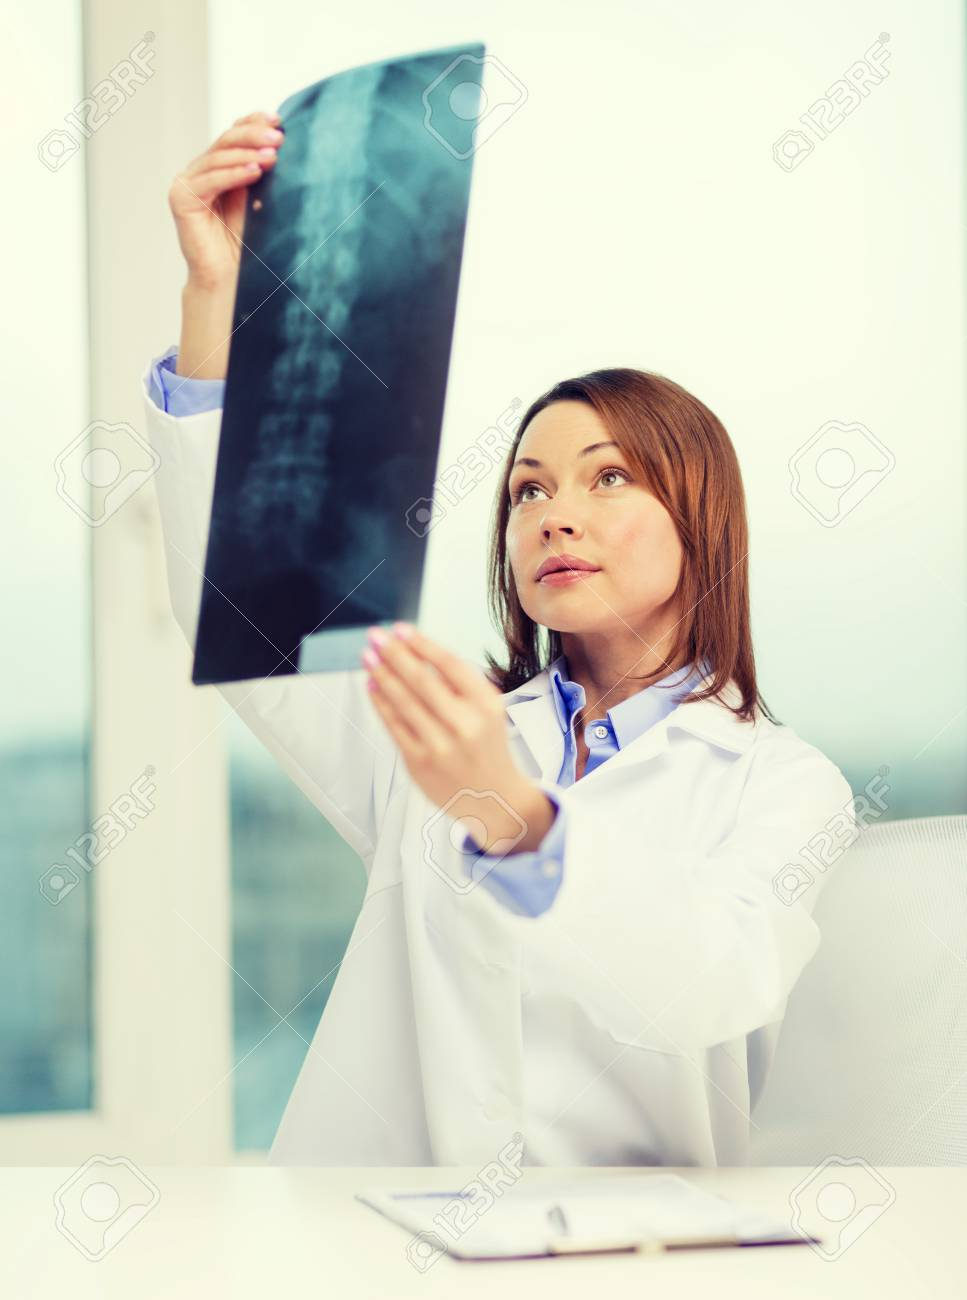 Healthcare Medical And Radiology Concept Concentrated Doctor